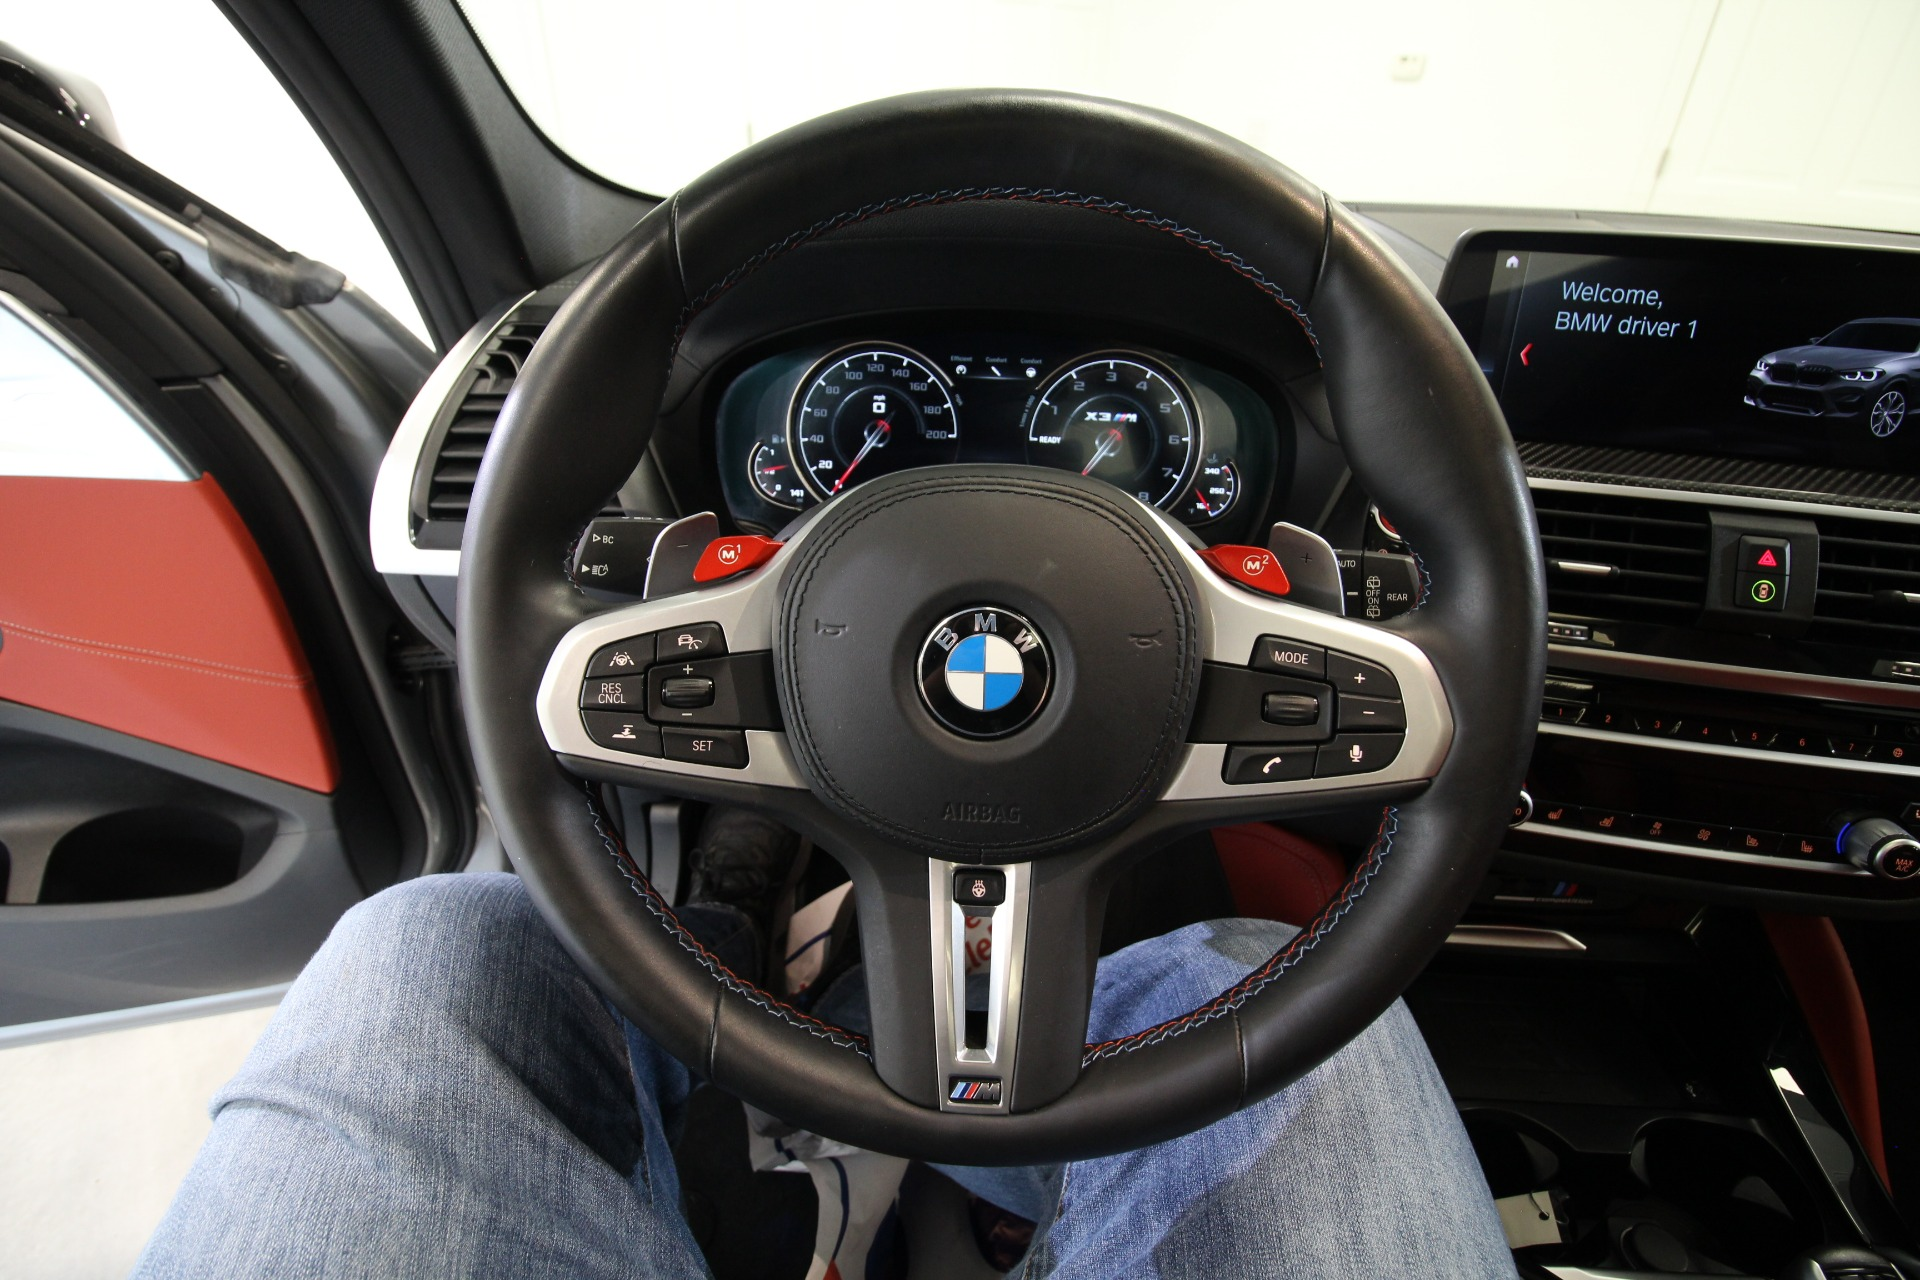 Used 2020 BMW X3 M Competition LIKE NEW RARE COLOR GREY OVER ORANGE LOADED EXEC AND DRIV ASSIS   Albany, NY